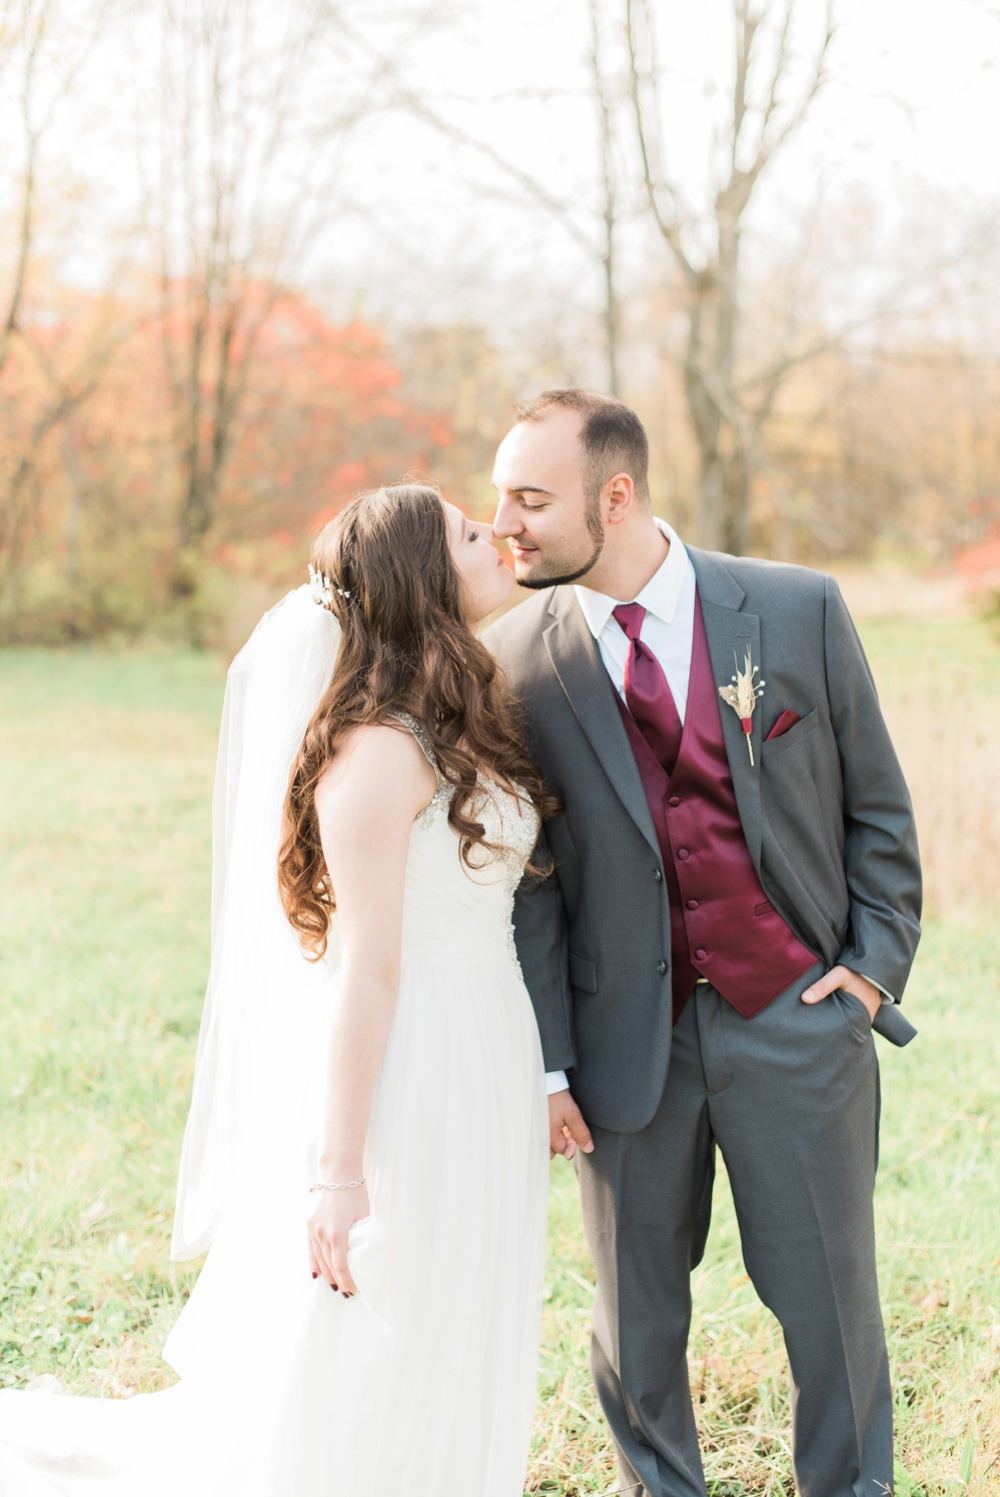 ricciardis-tree-farm-wedding-wadsworth-ohio-lauren-ryan_0095.jpg